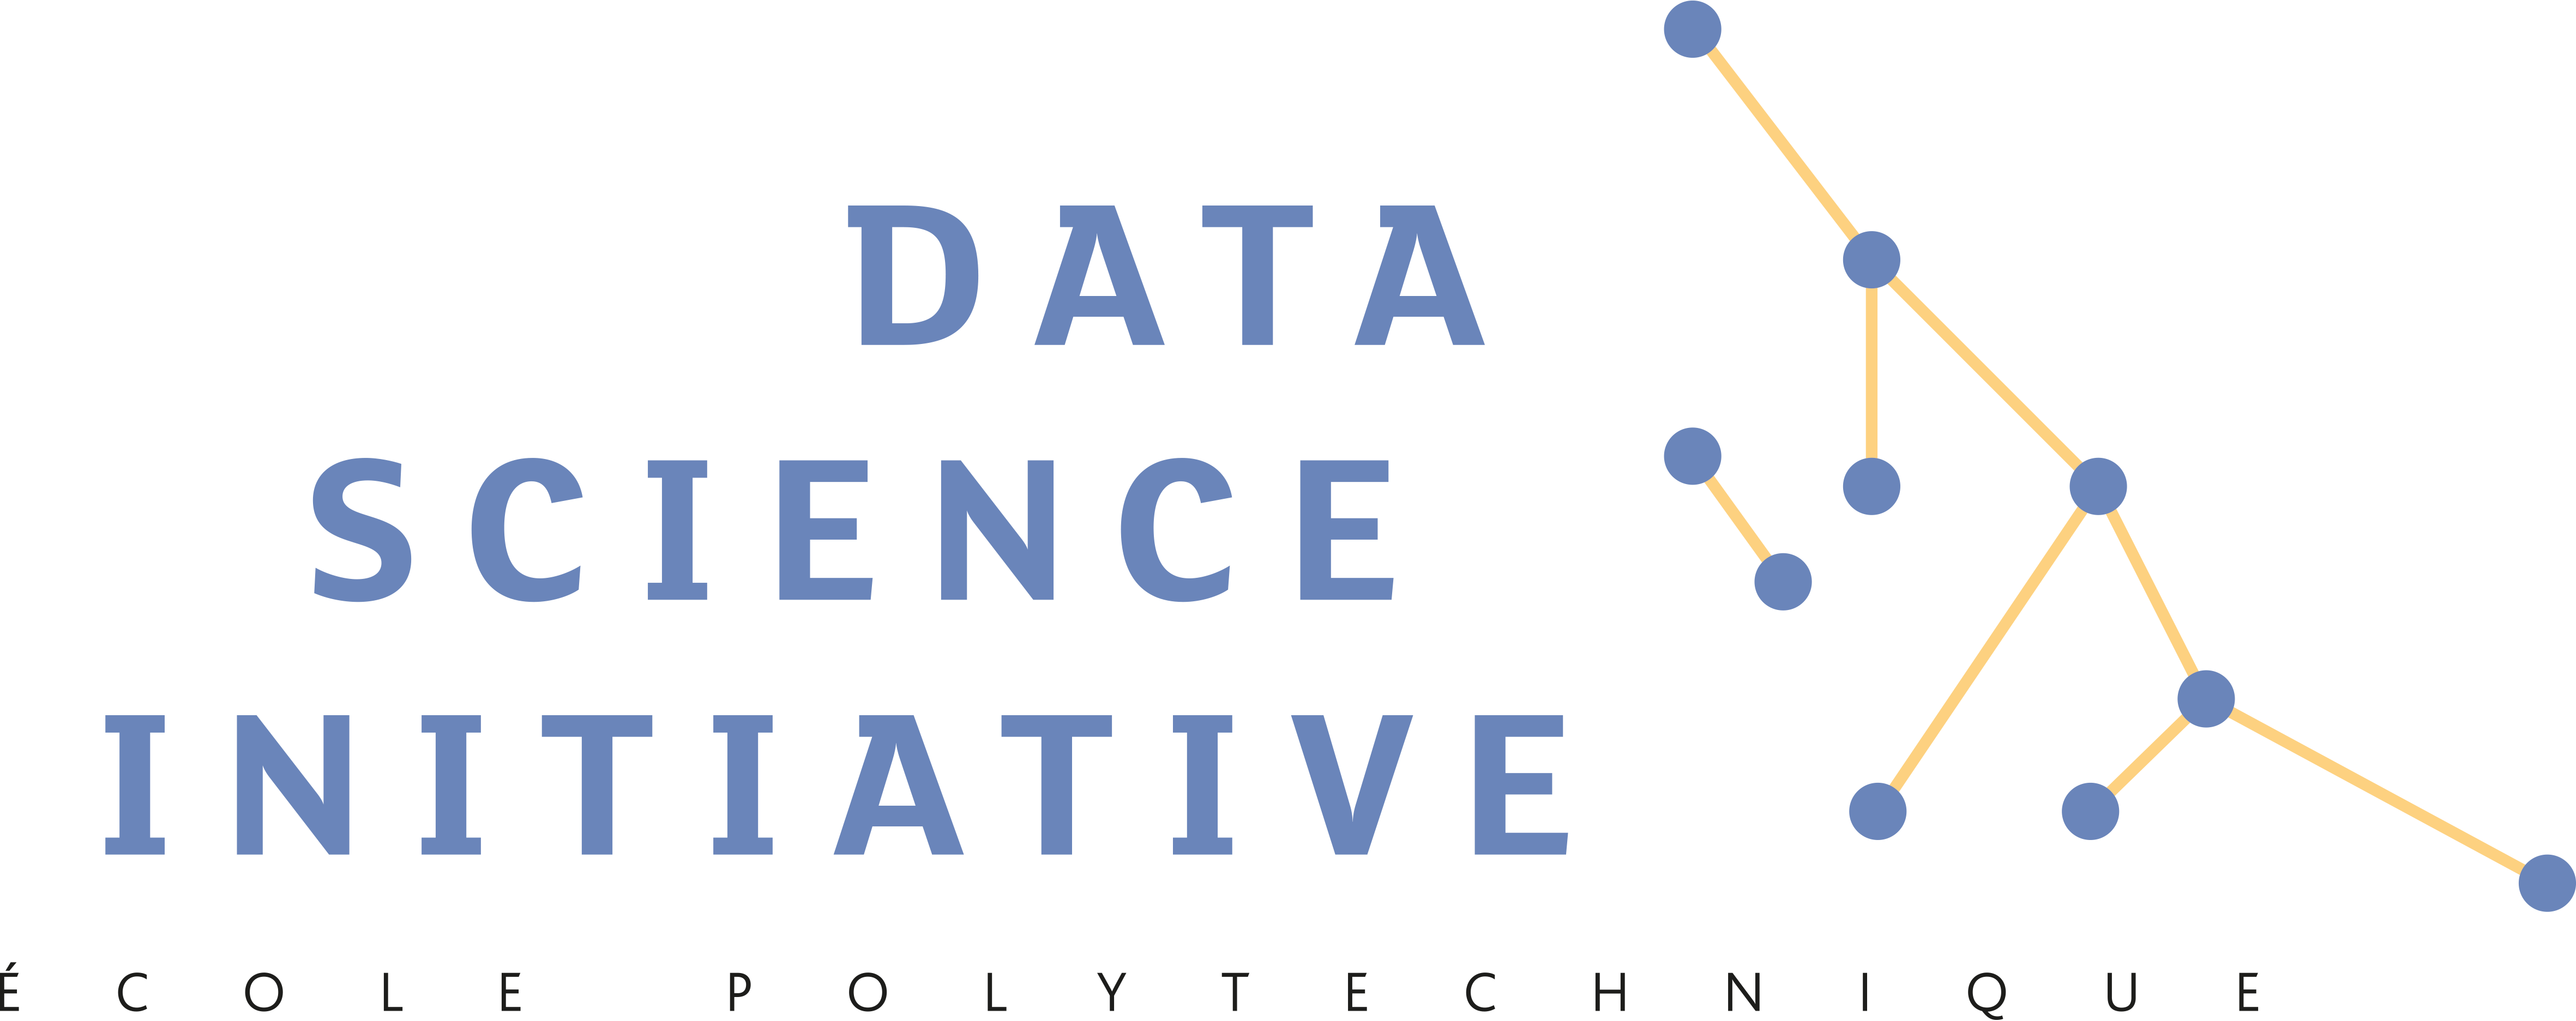 École polytechnique Data Science Initiative